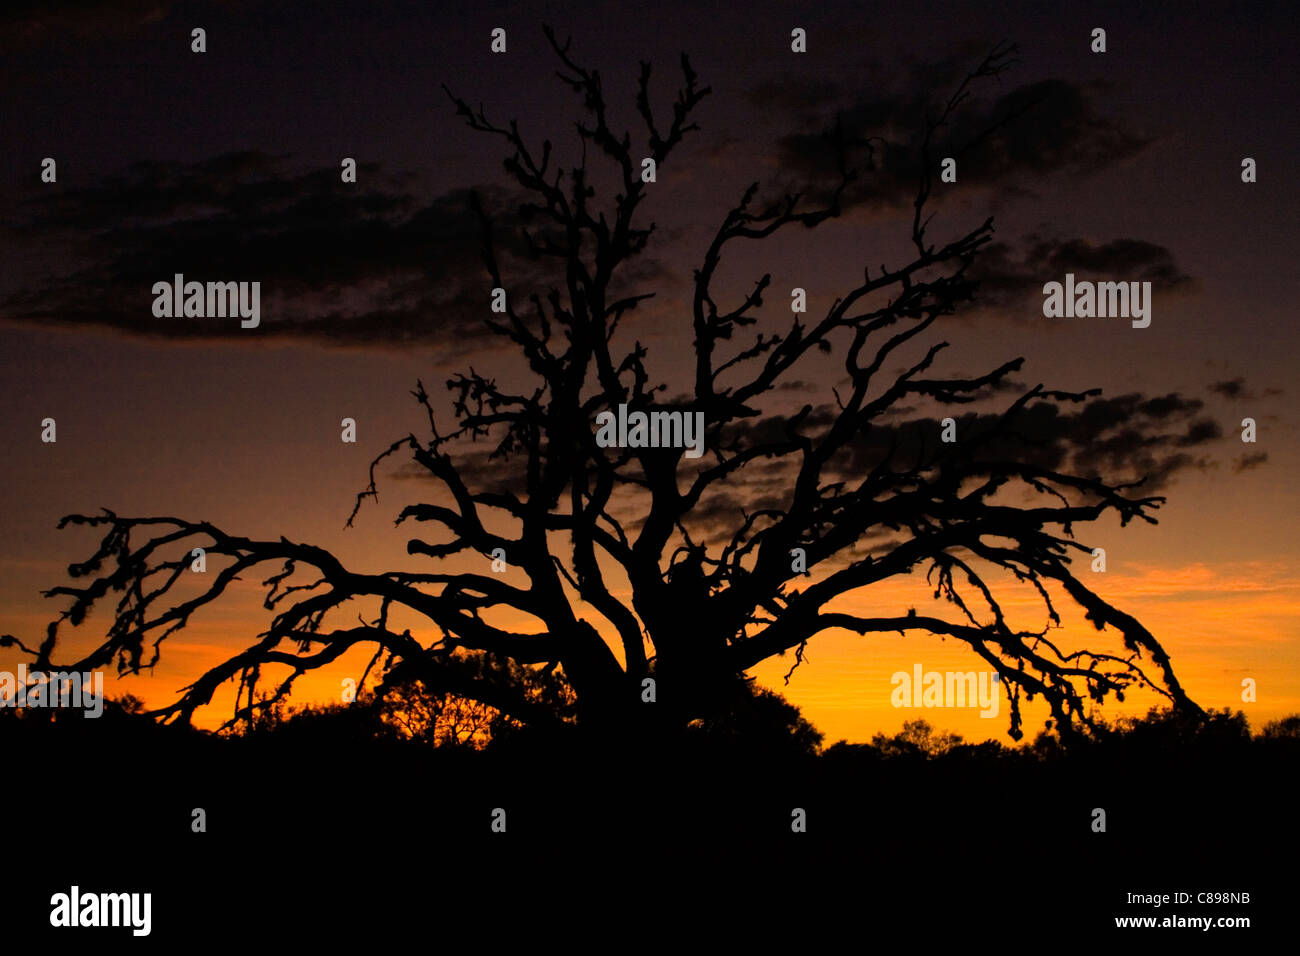 Spooky dead tree silhouetting against sunset. - Stock Image